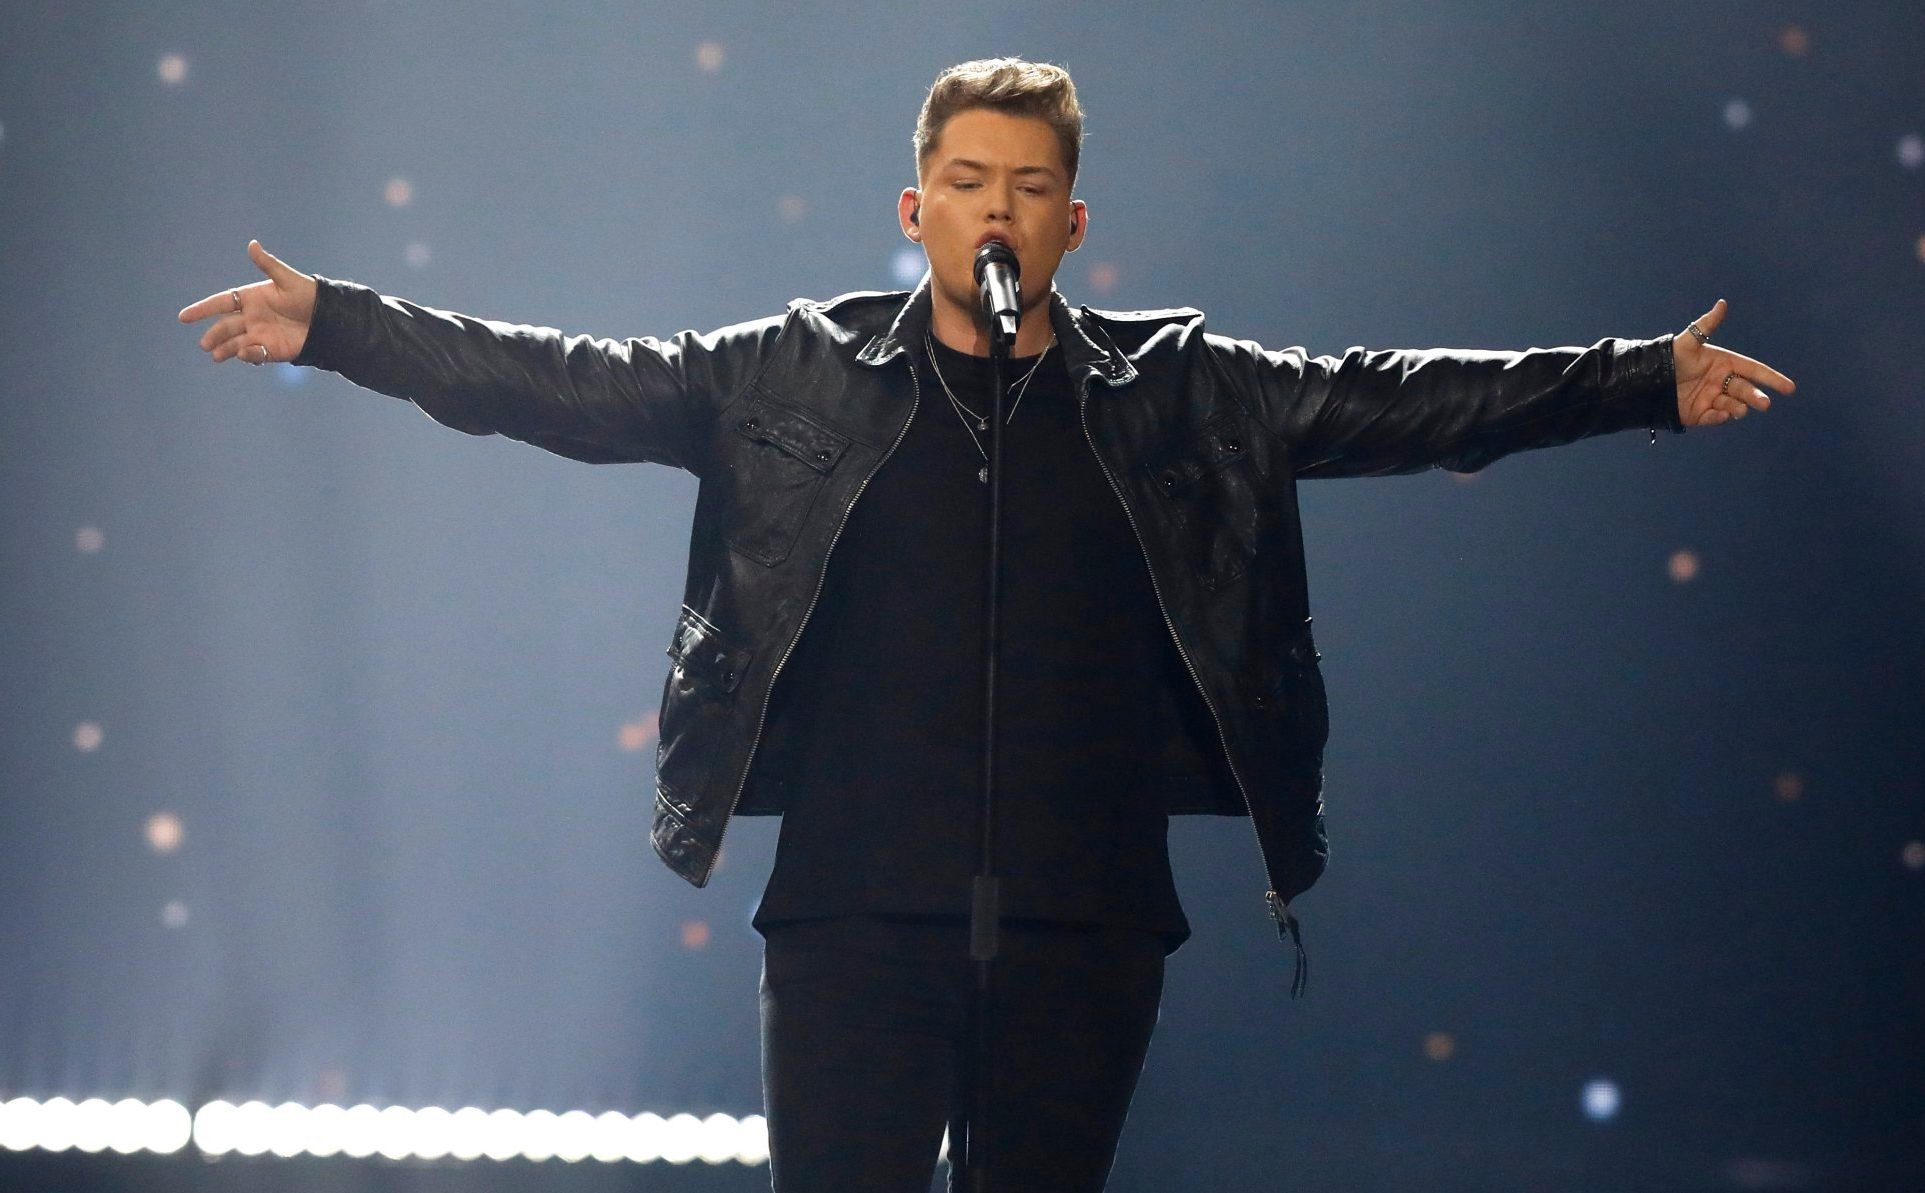 United Kingdom finish in last place at Eurovision as Michael Rice receives 16 points